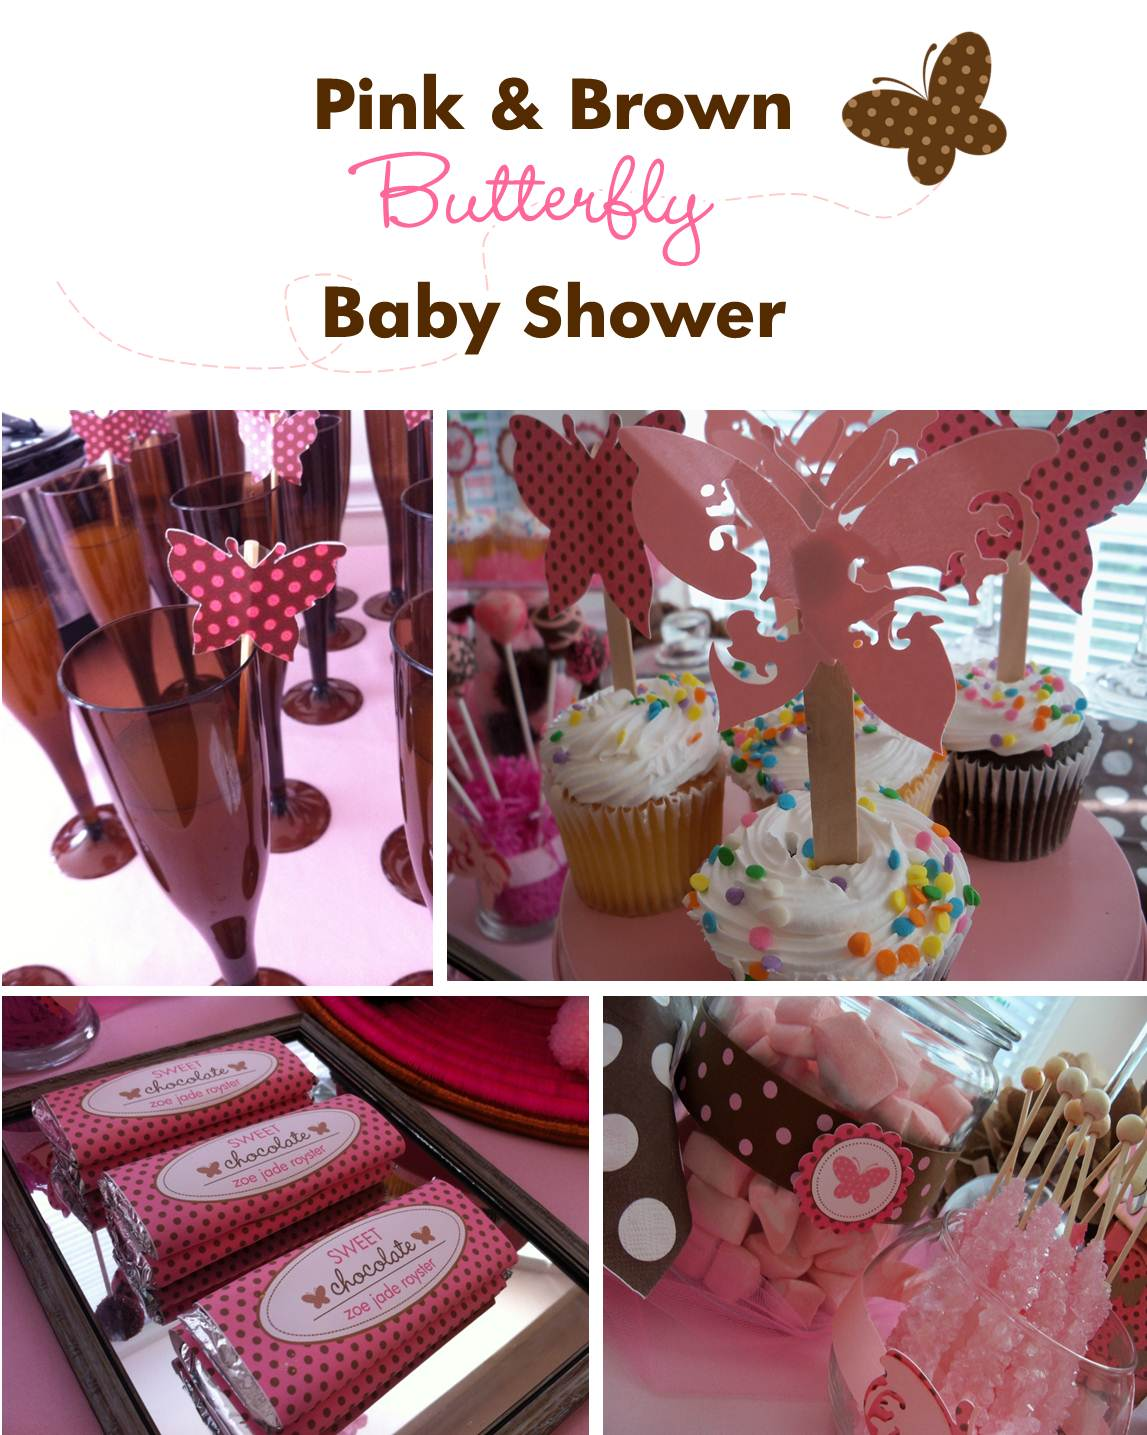 Cupcake Wishes & Birthday Dreams: {MG Party Impressions} Pink